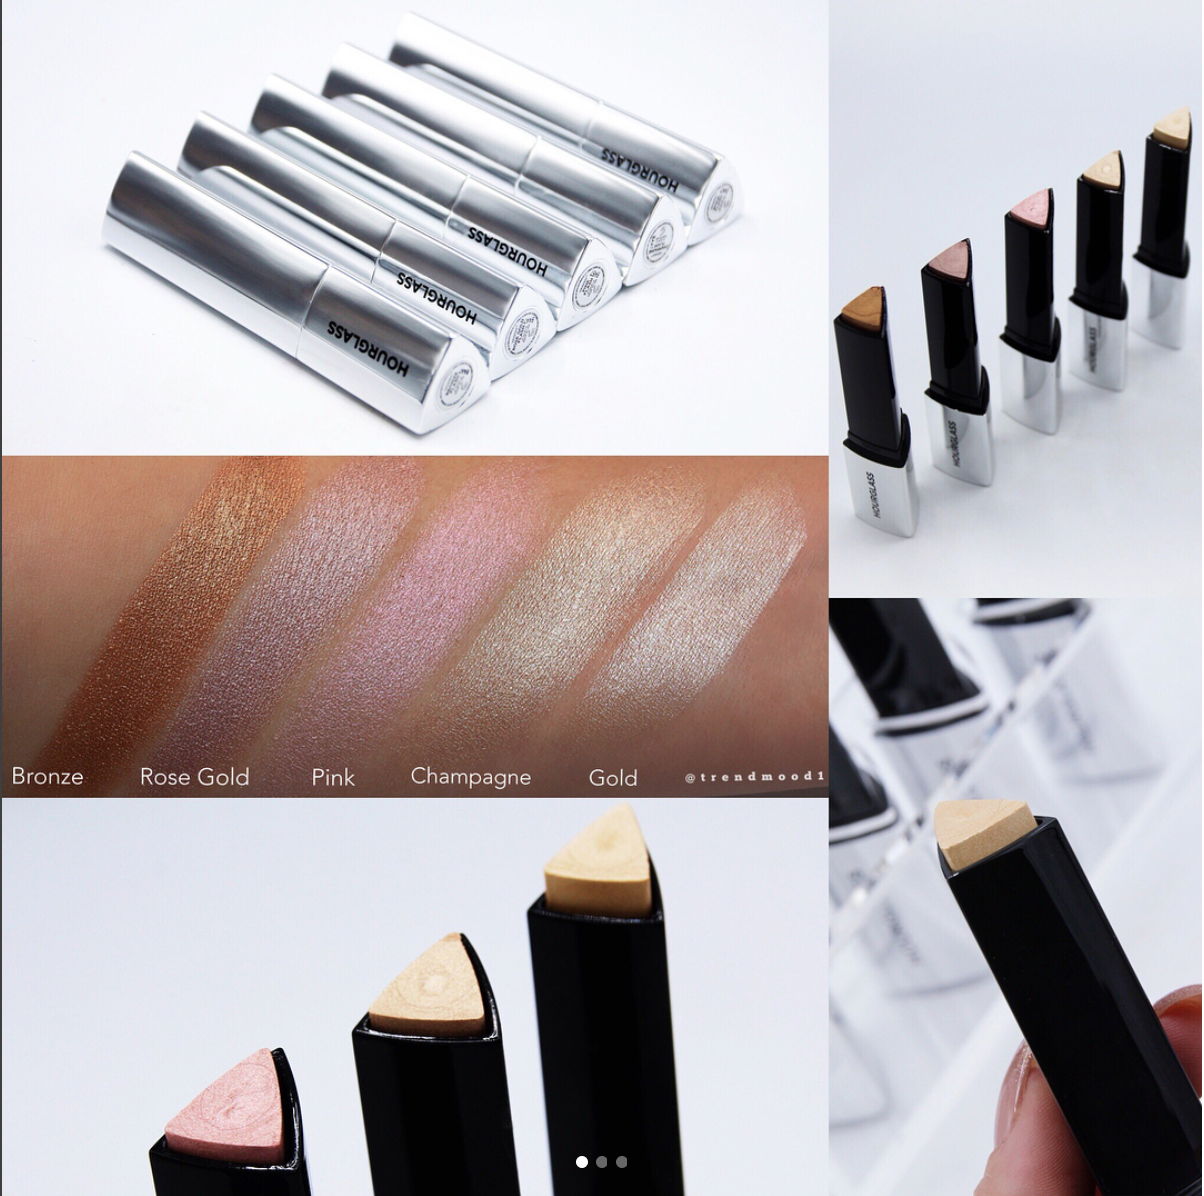 Hourglass Cosmetics Vanish Flash Highligher Sticks Swatches and Release Date